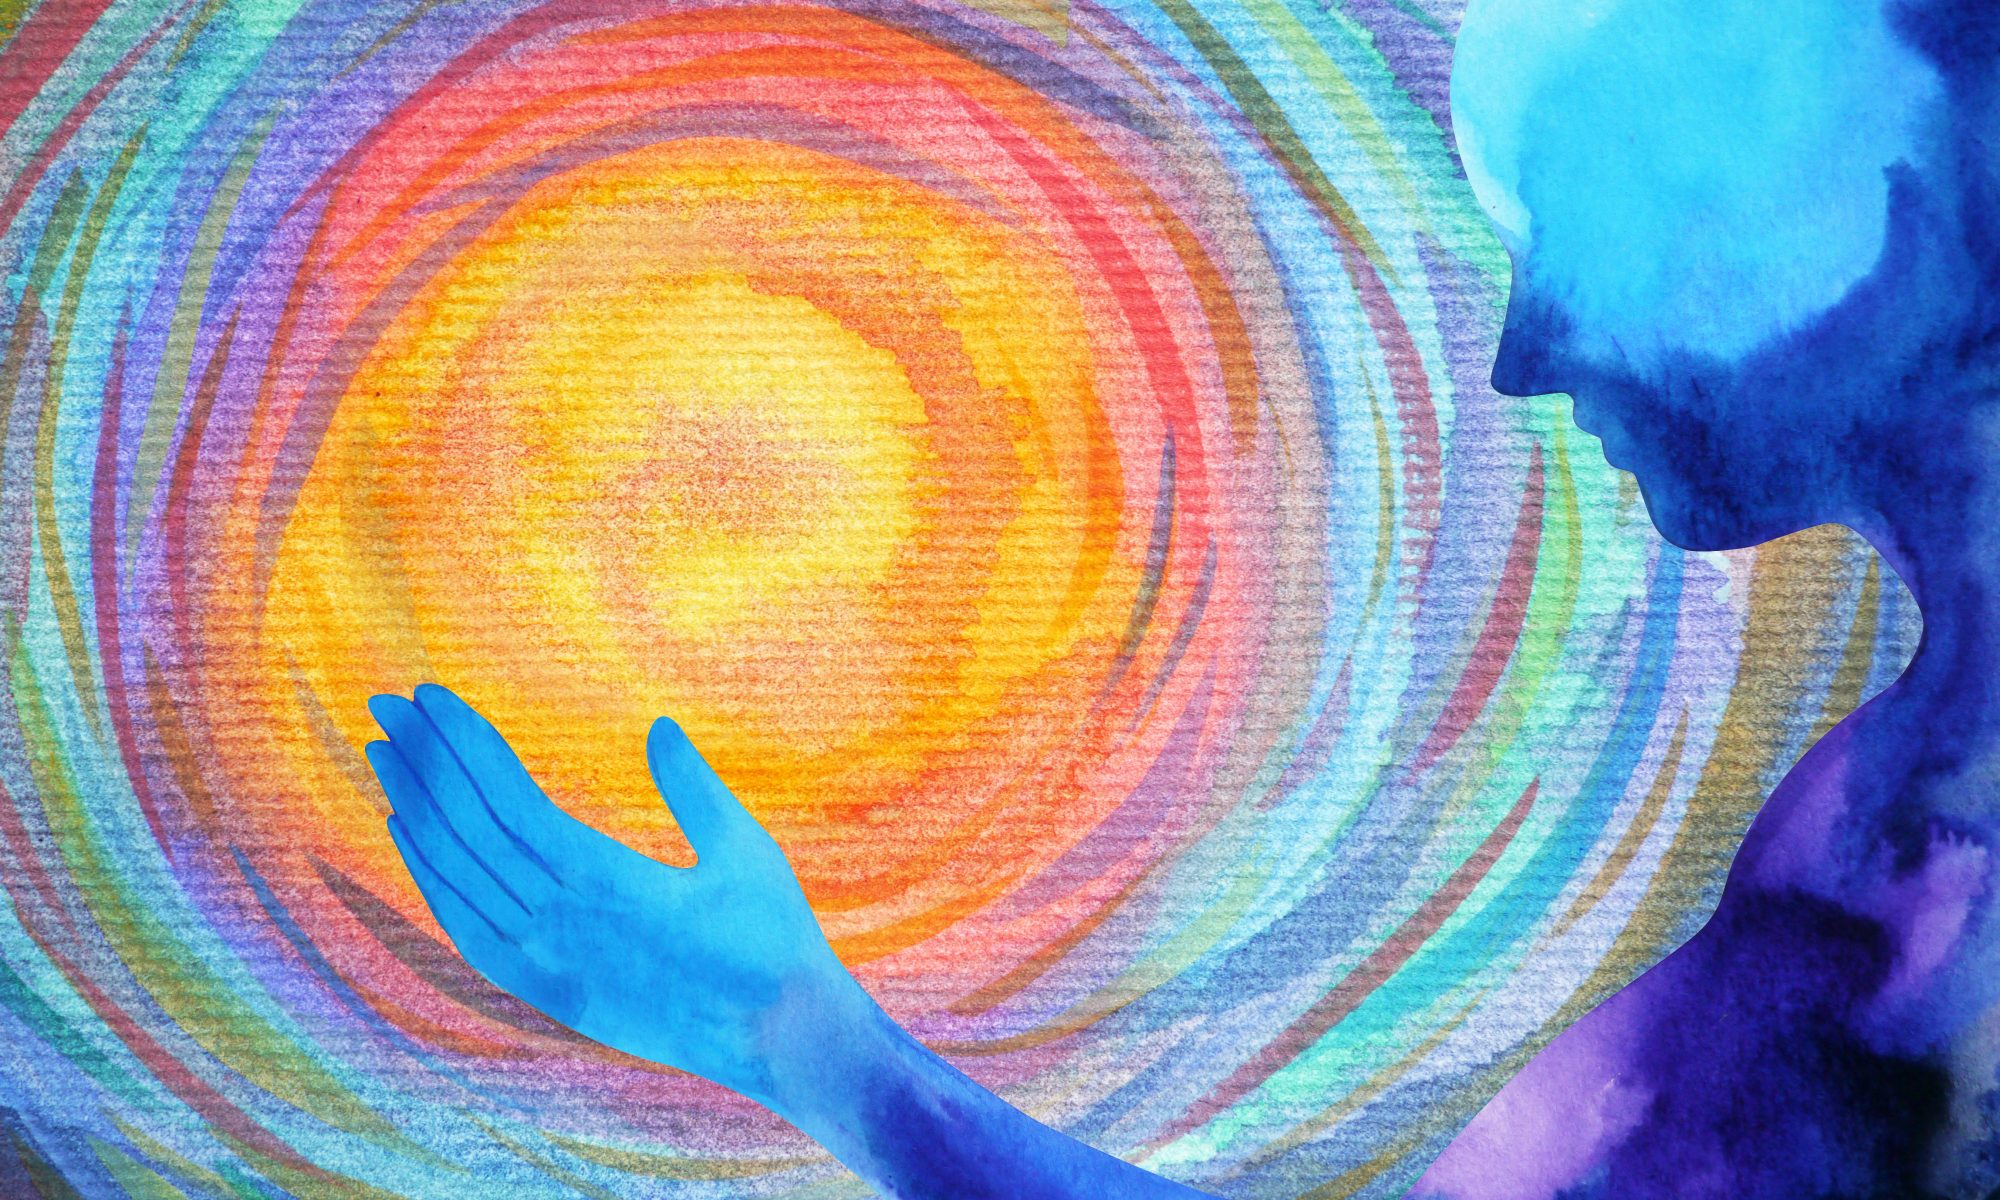 water color painting of a silhouette of a person putting their hand toward a swirl of colors that resemble the sun to represent psychedelics for moral injury